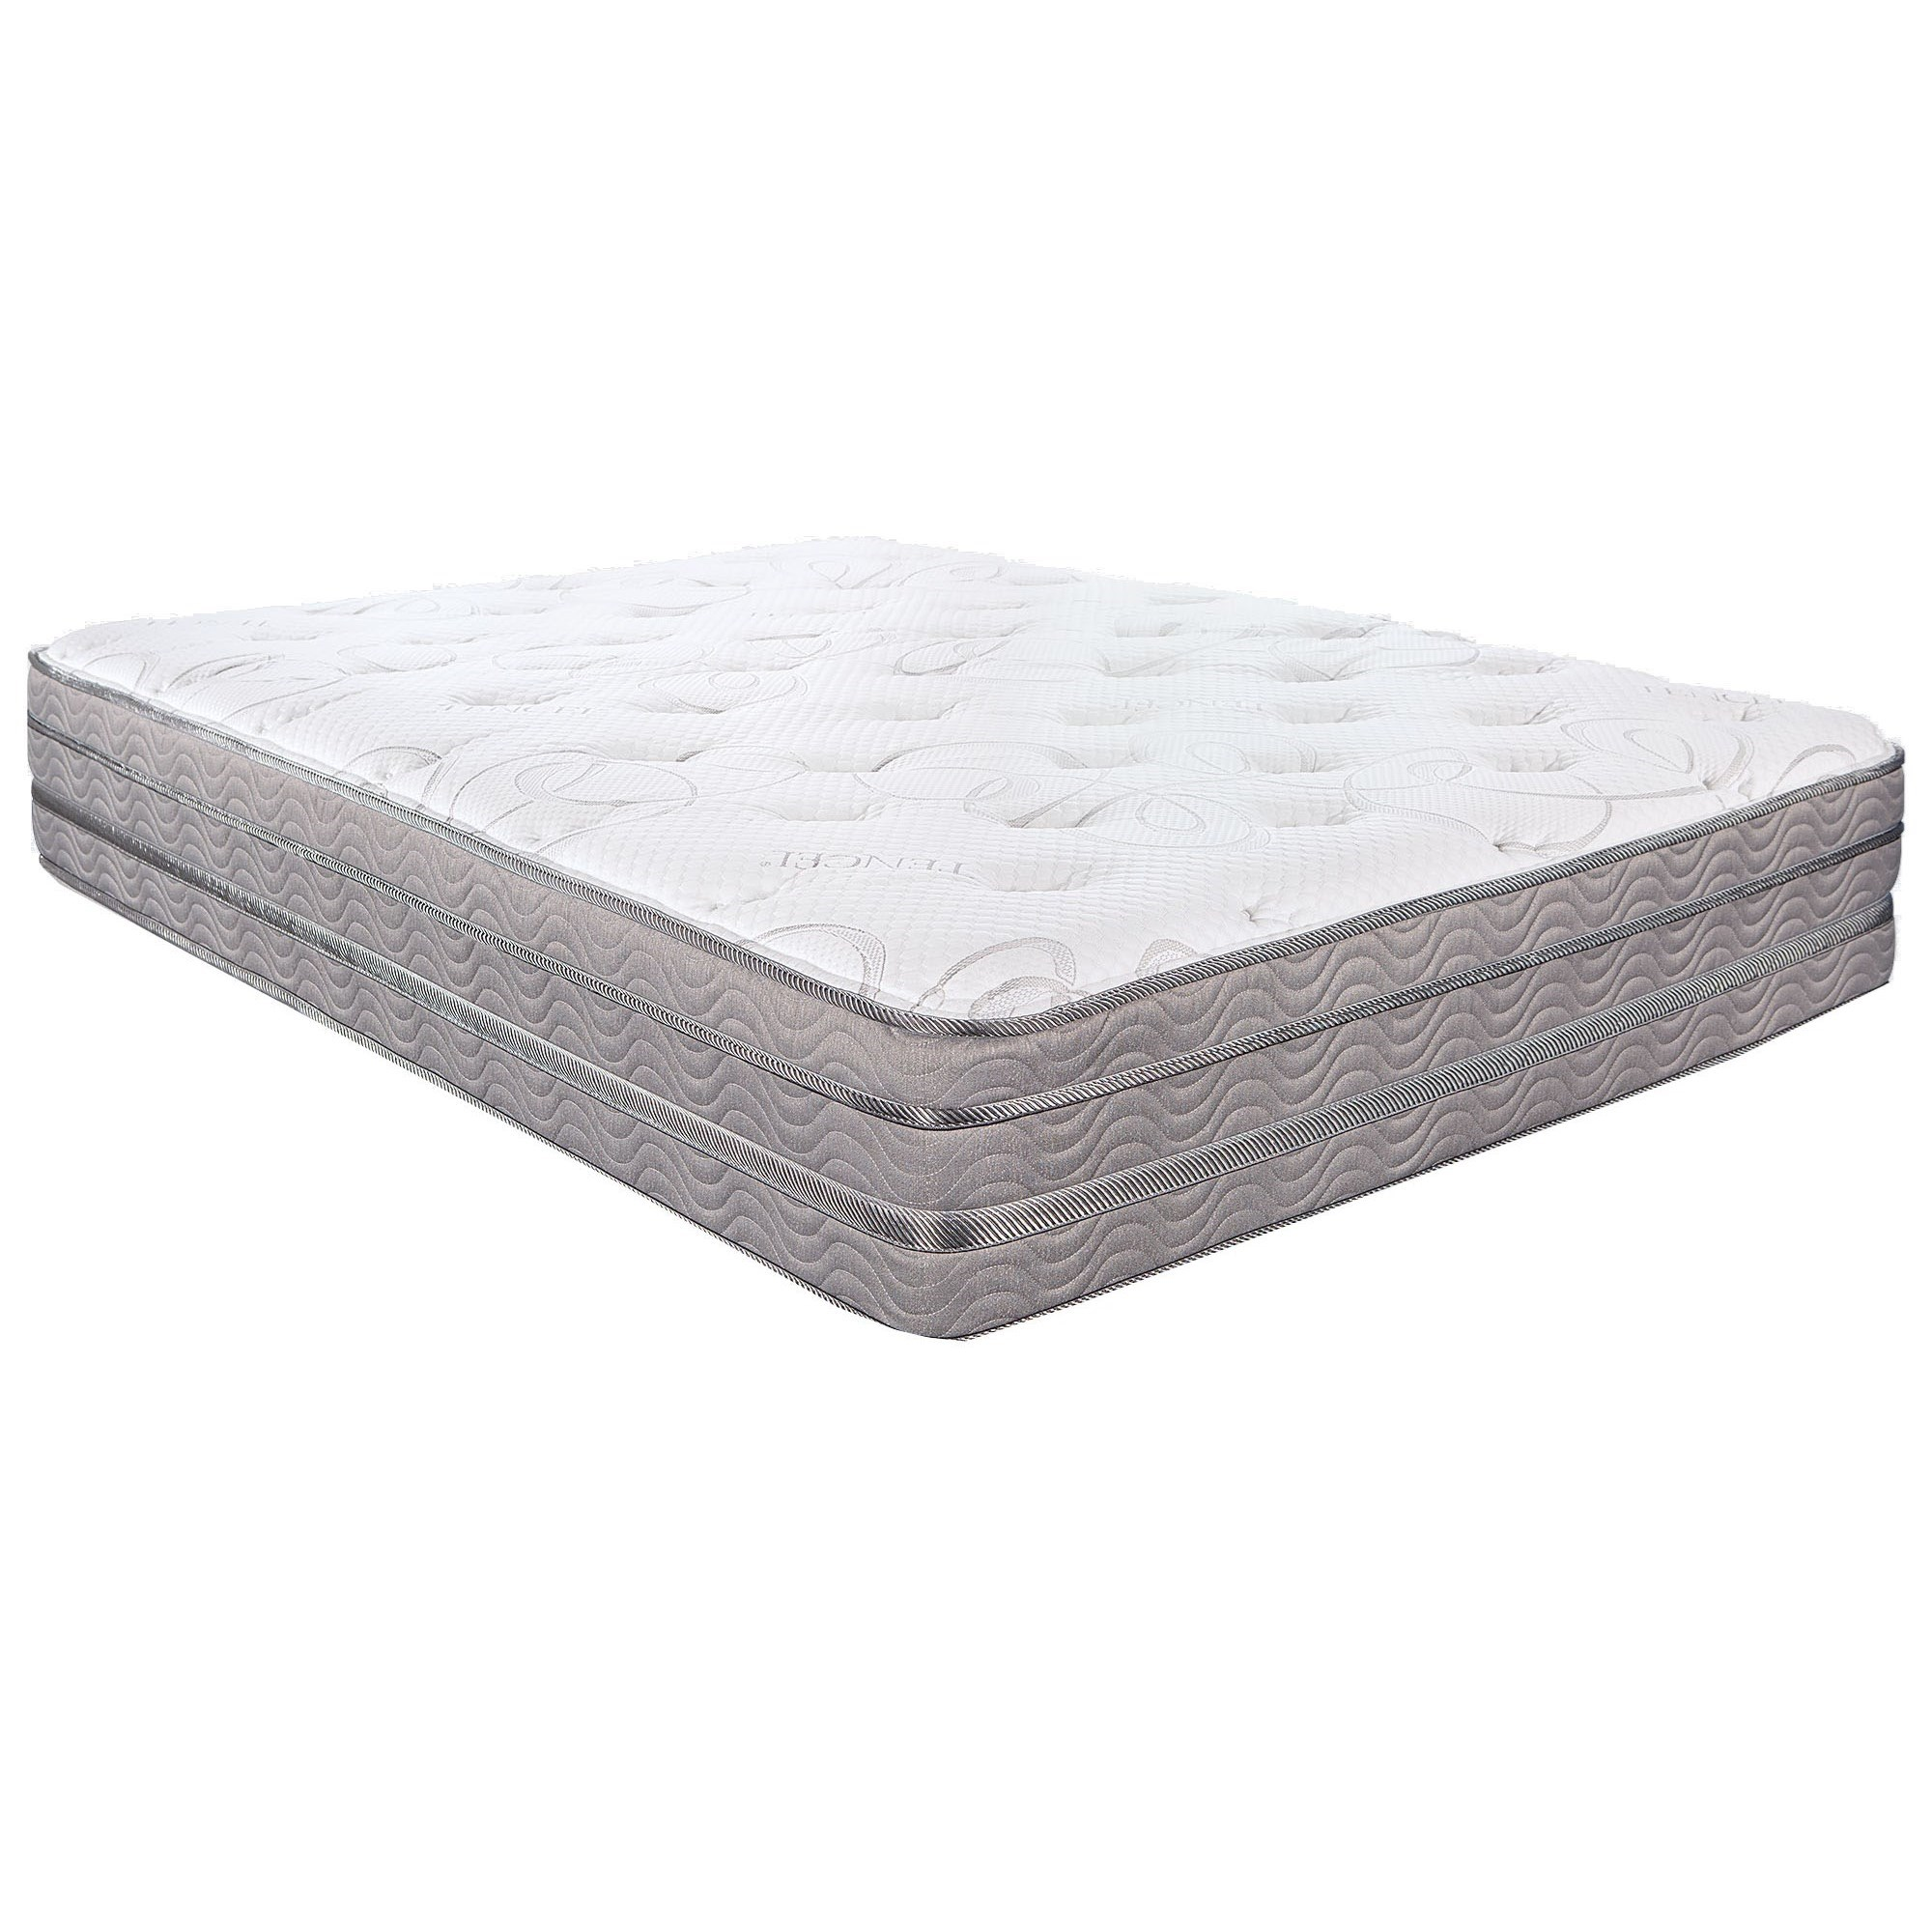 "Queen 12"" Euro Top Mattress"